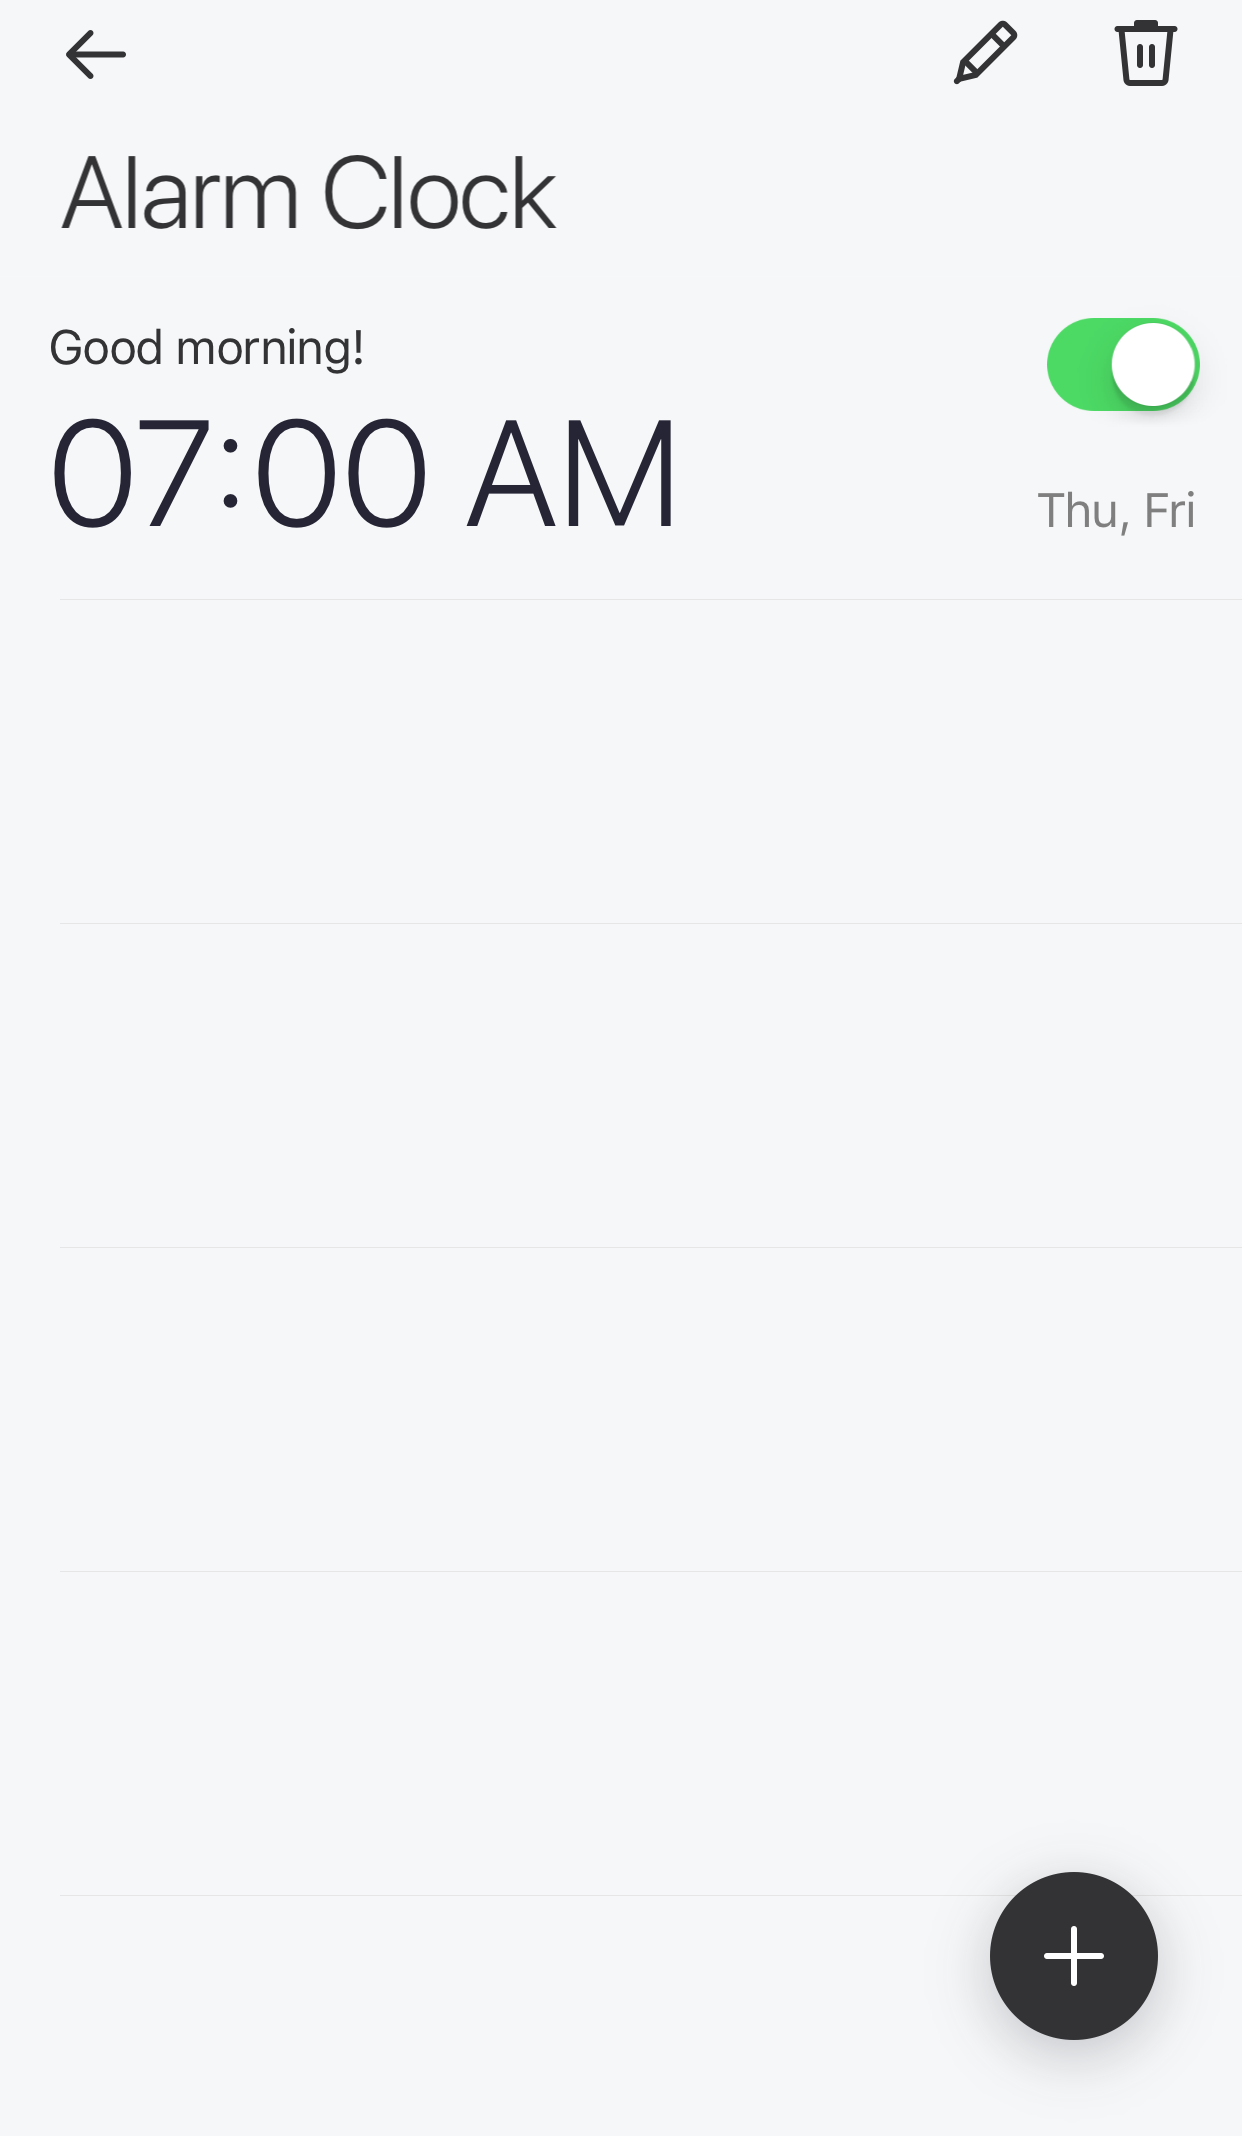 Glance App - Alarm Clock - Manage alarms